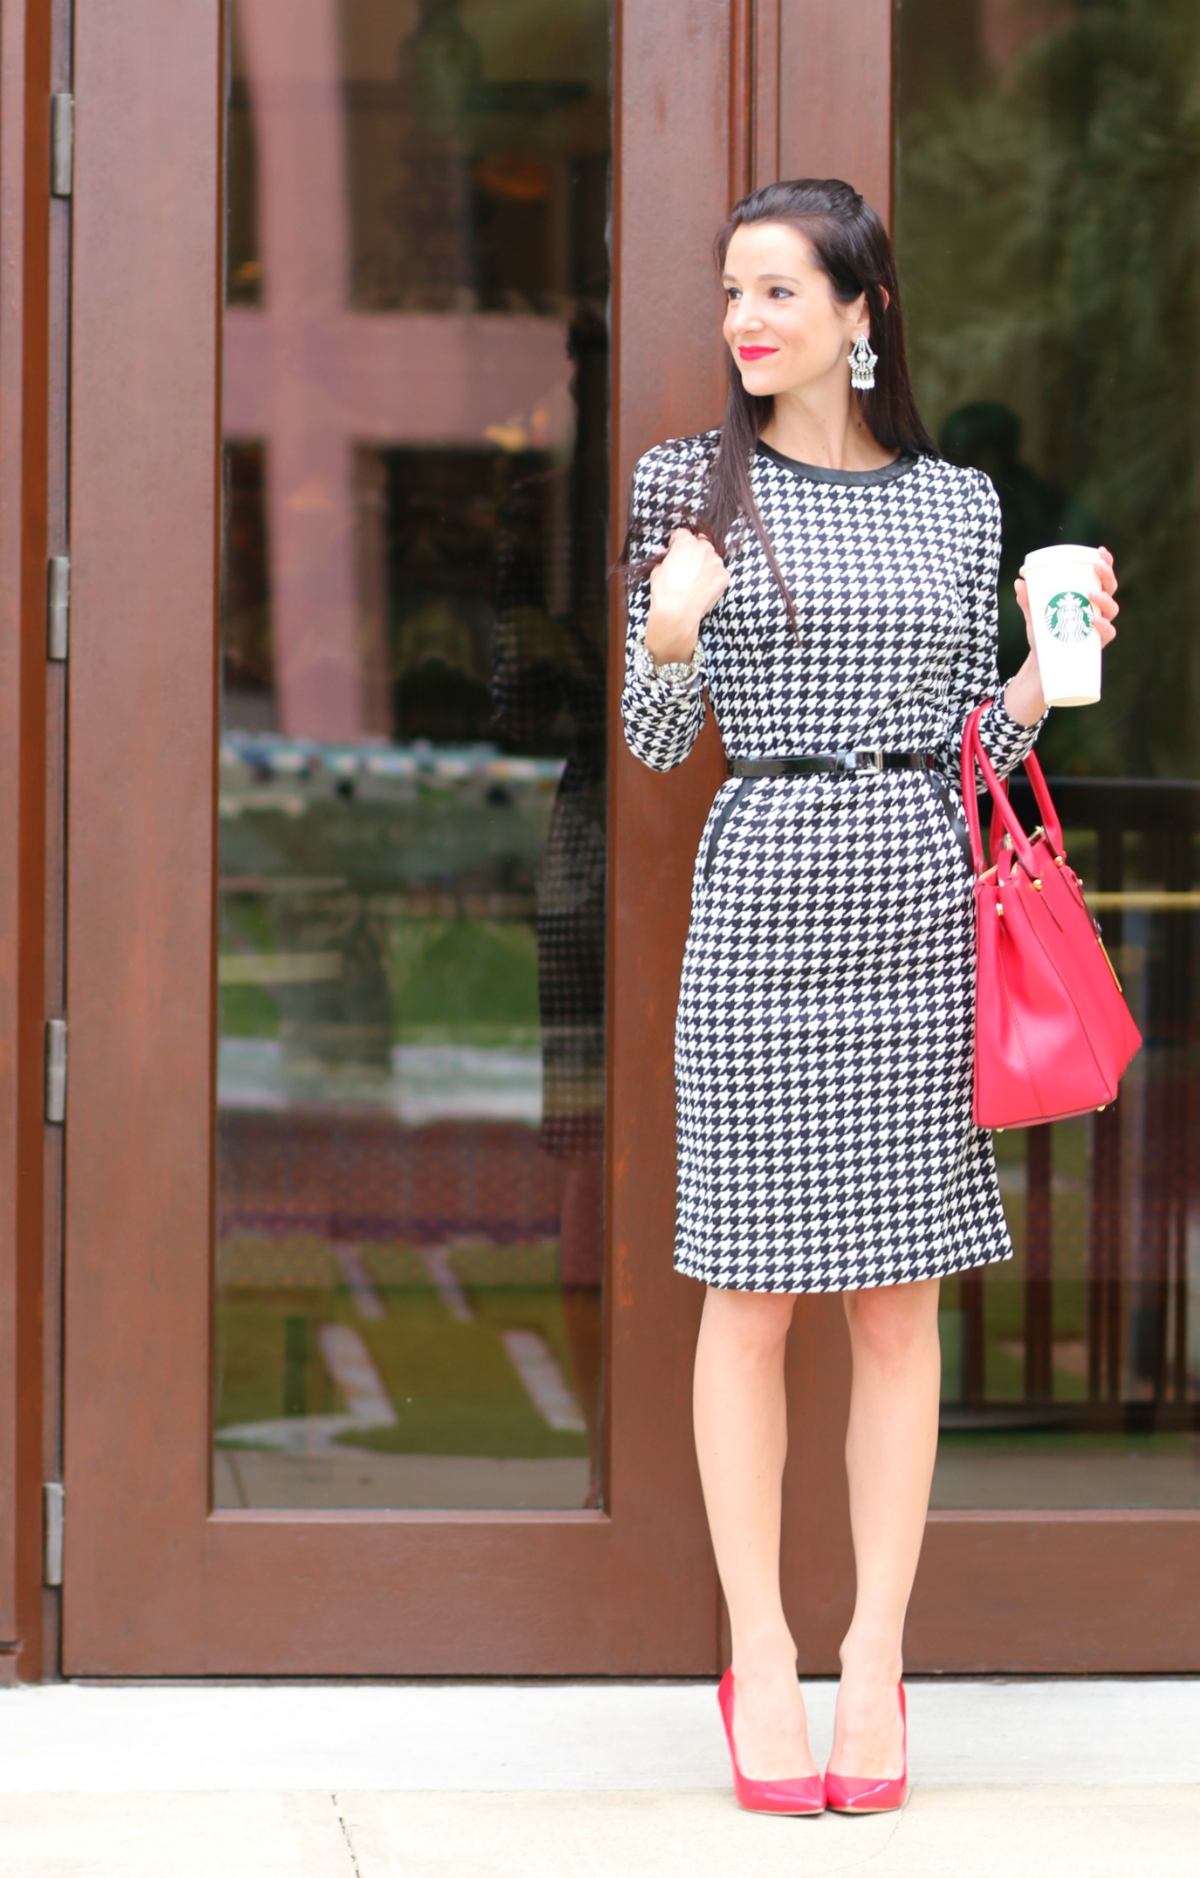 For any fashion-forward girlbosses out there, this affordable houndstooth print dress from SheIn is the definition of devilishly professional.